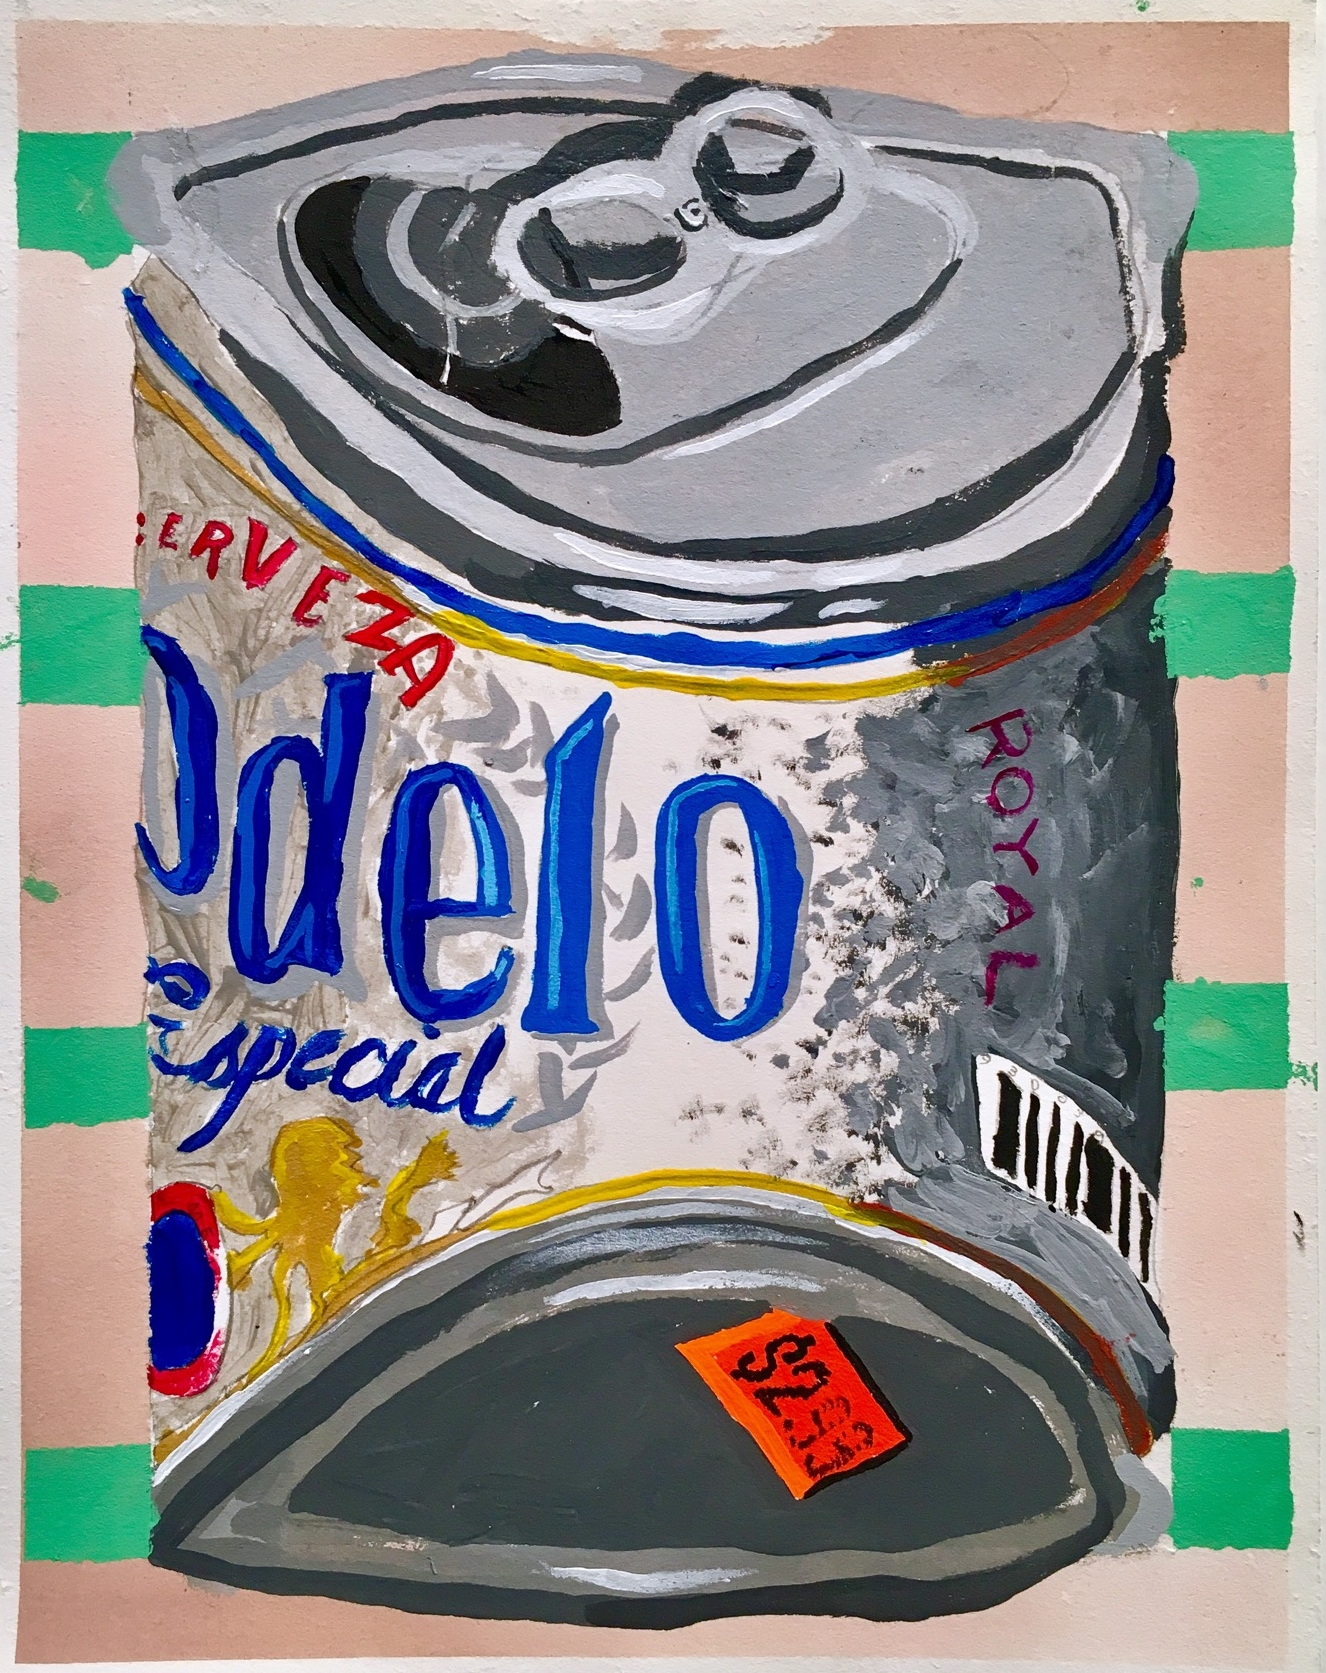 Delo acrylic on paper 11 x 8.5 inches 2017